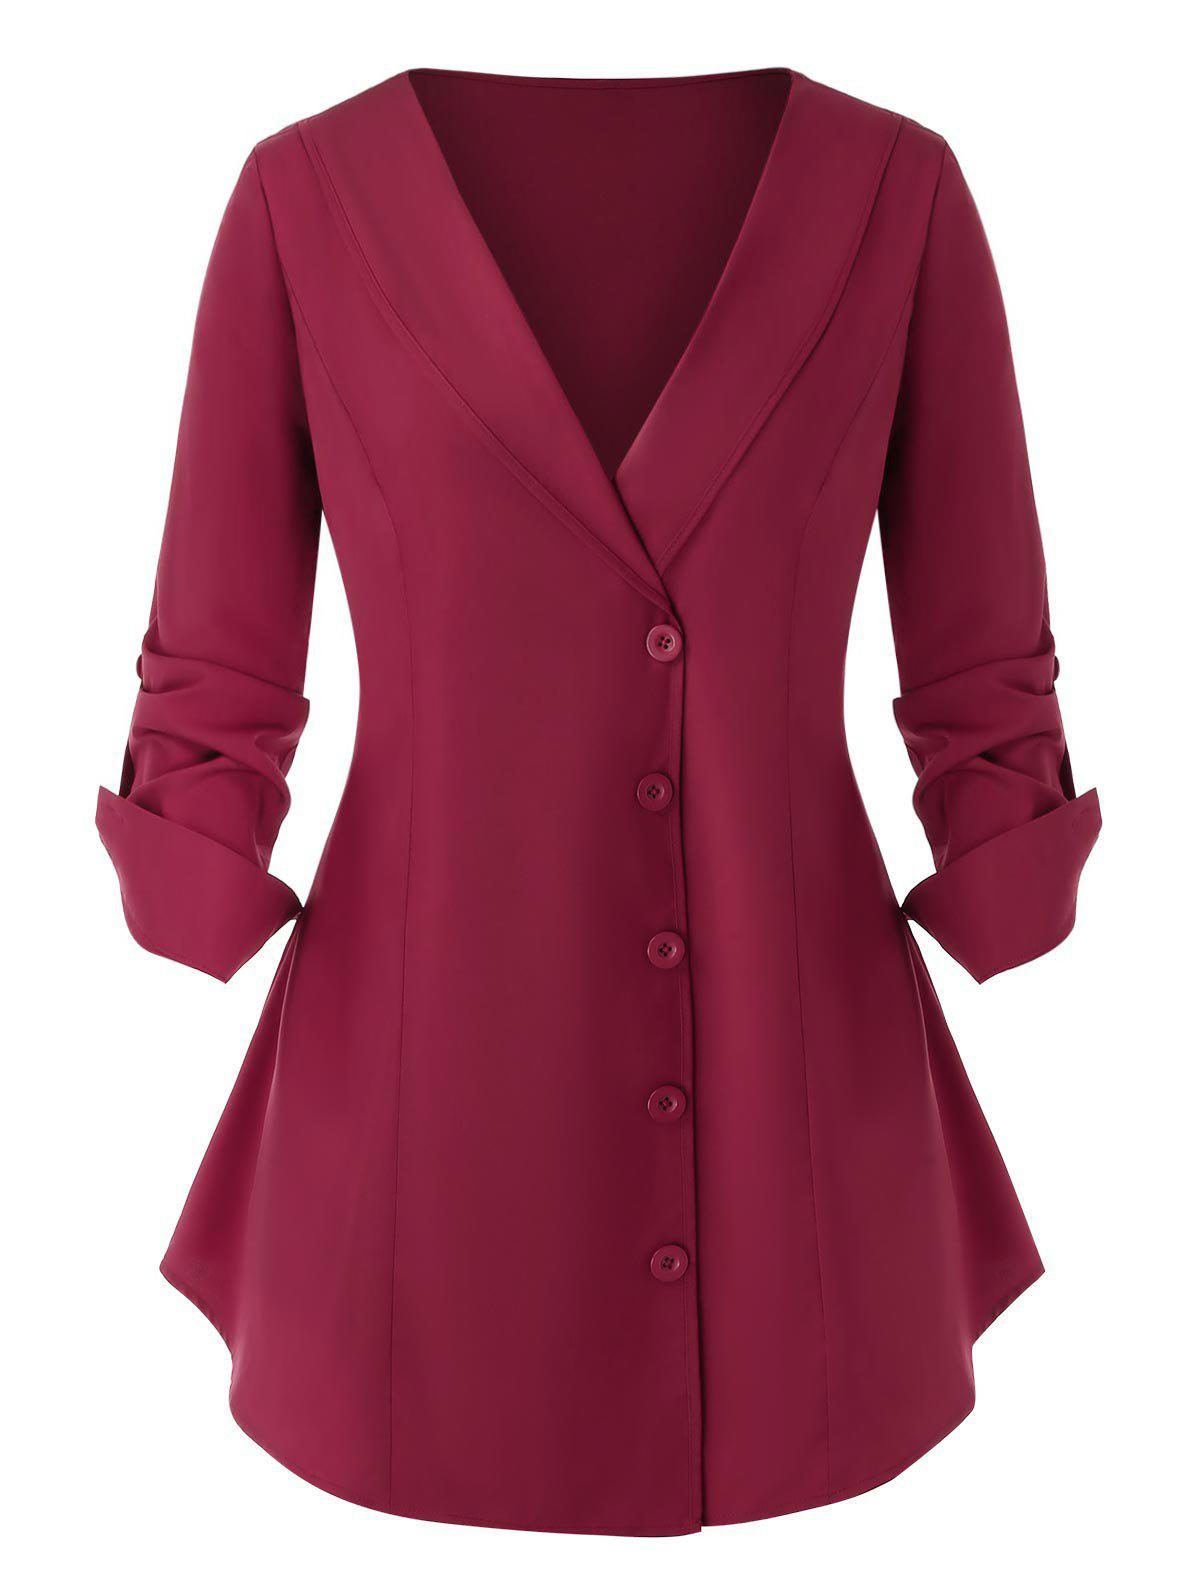 Plus Size Buttons Long Sleeve Top - RED WINE L